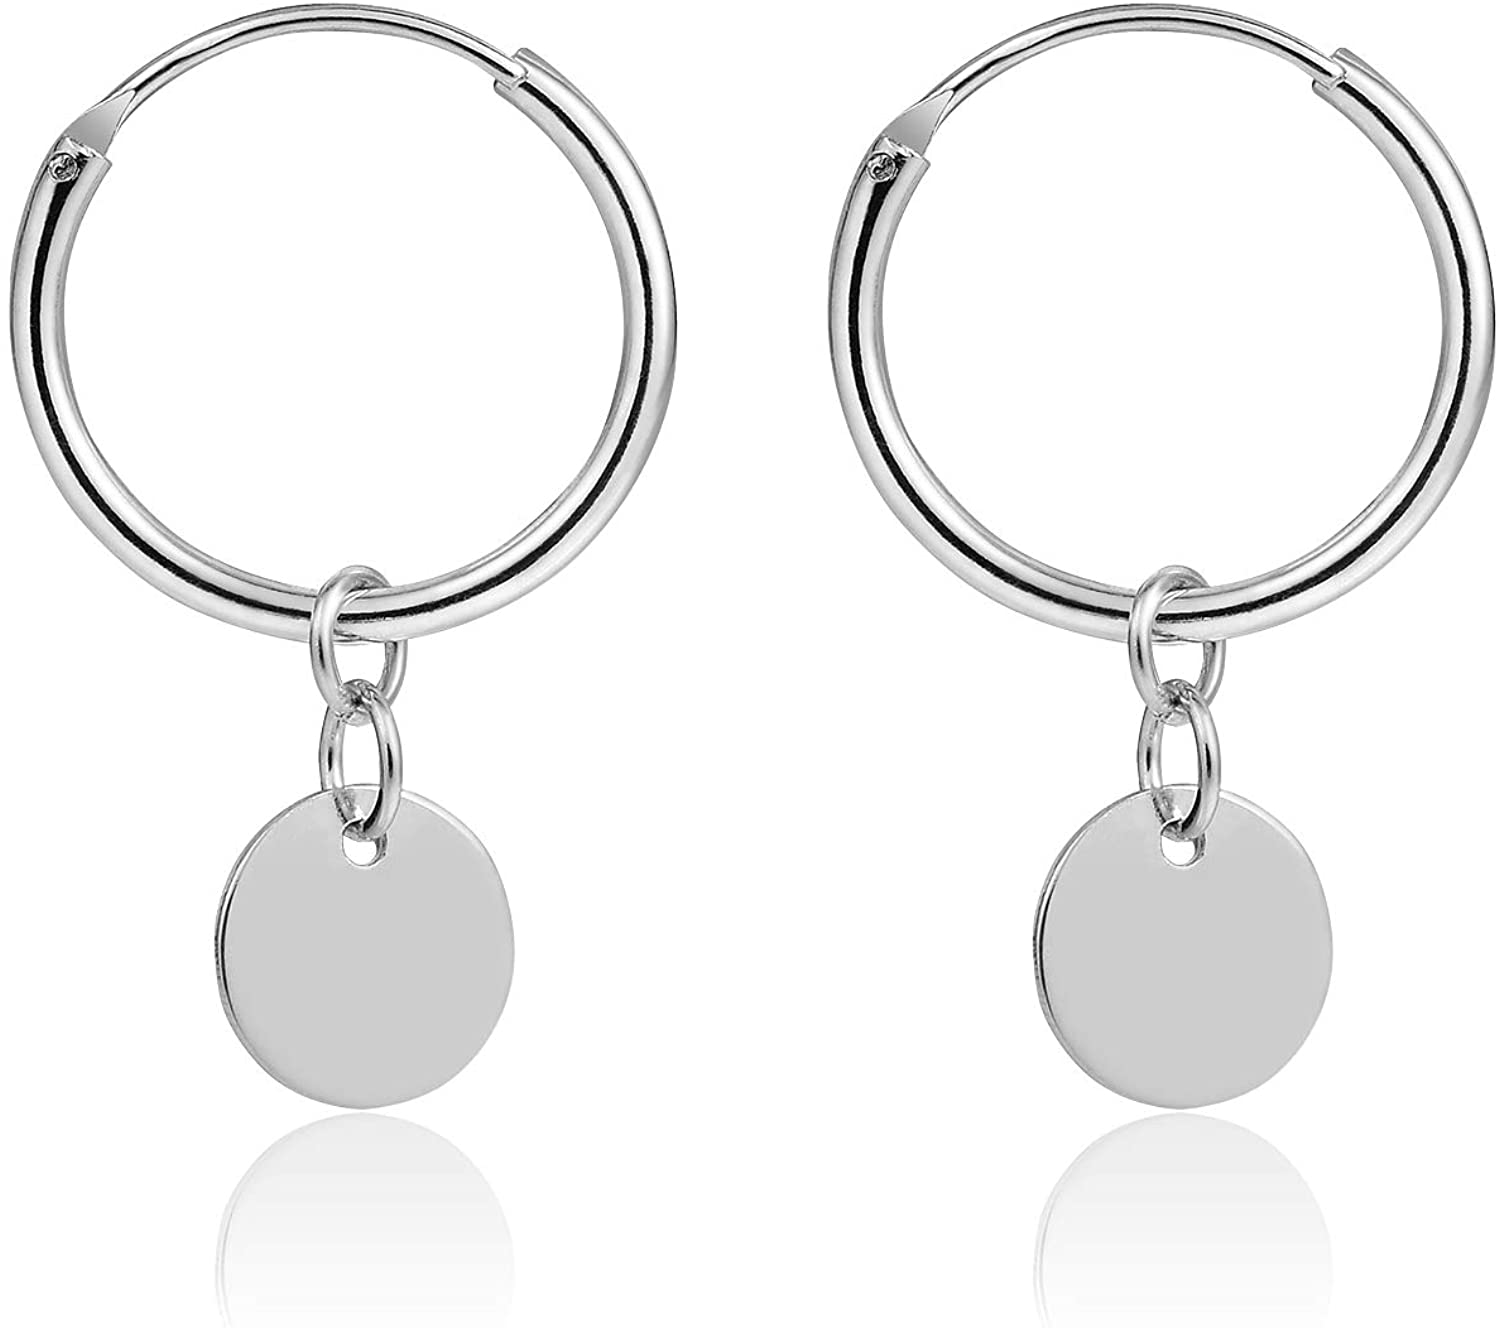 YeGieonr Small Dangle Hoop Earrings -925 Sterling Silver with 14k Gold Plated,Minimalist Dainty Huggie Hoop Earrings with Tiny Charms For Women/girls/teens